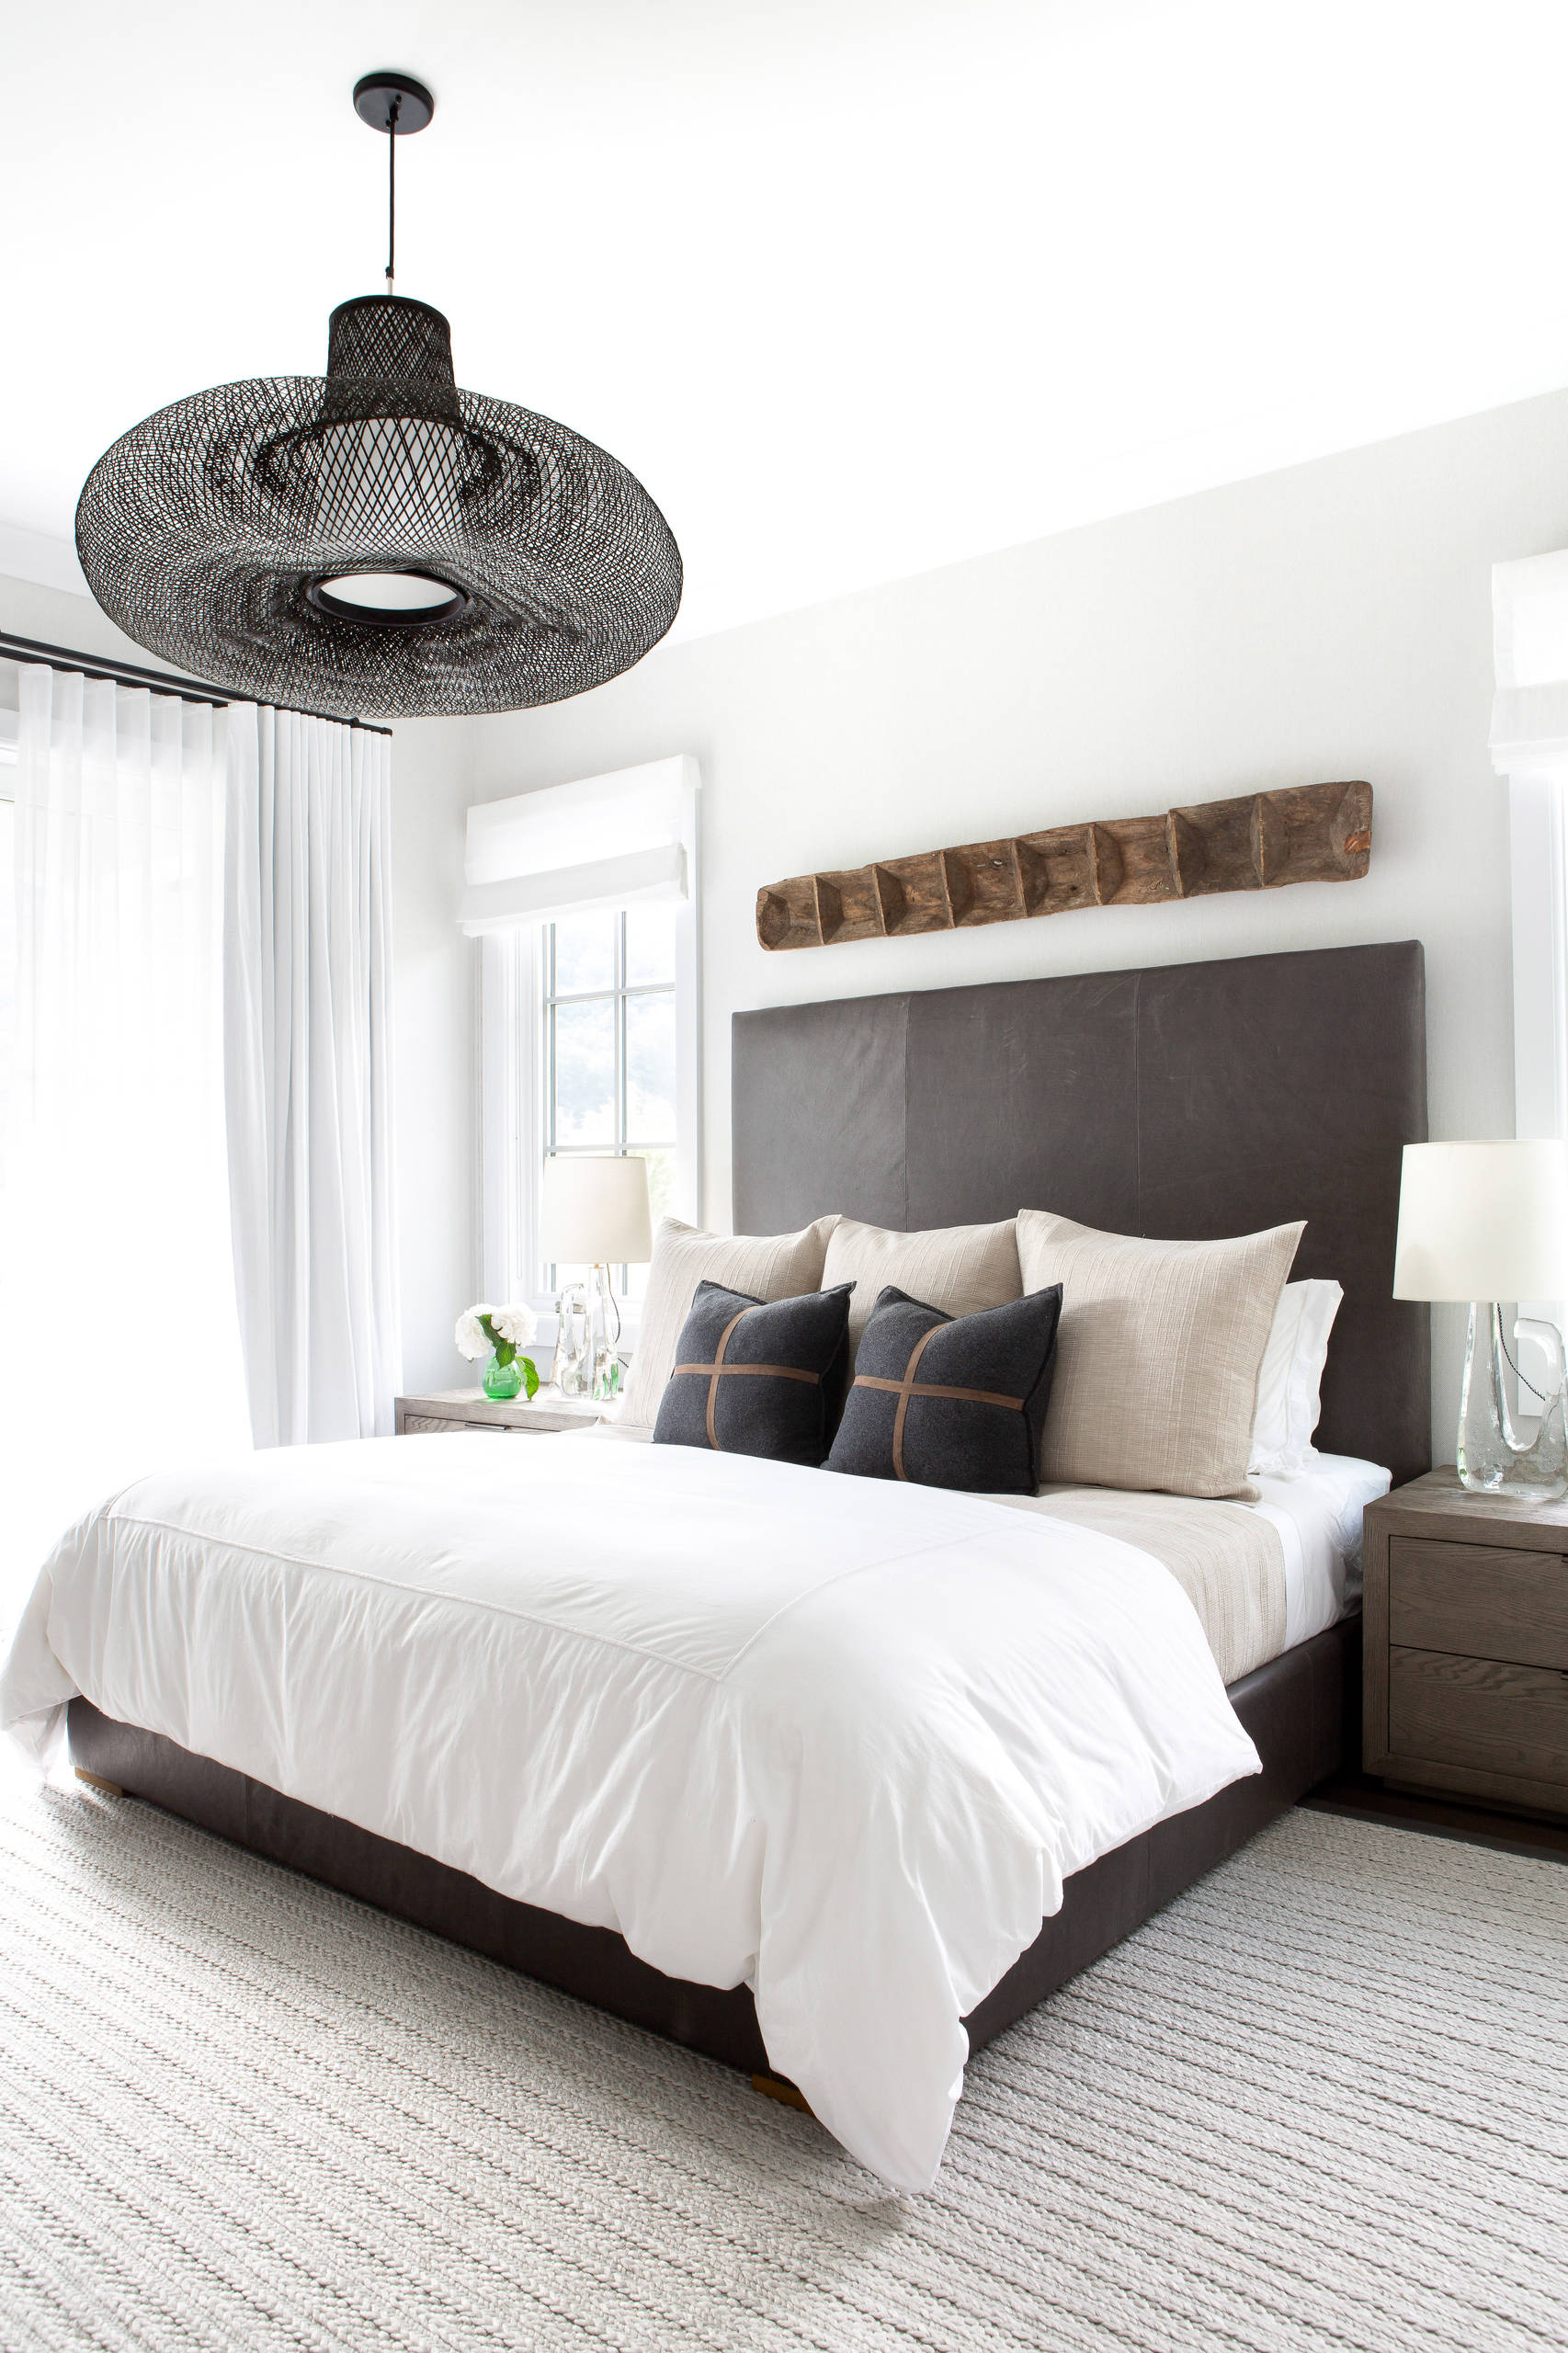 75 Beautiful Farmhouse Bedroom Pictures Ideas February 2021 Houzz